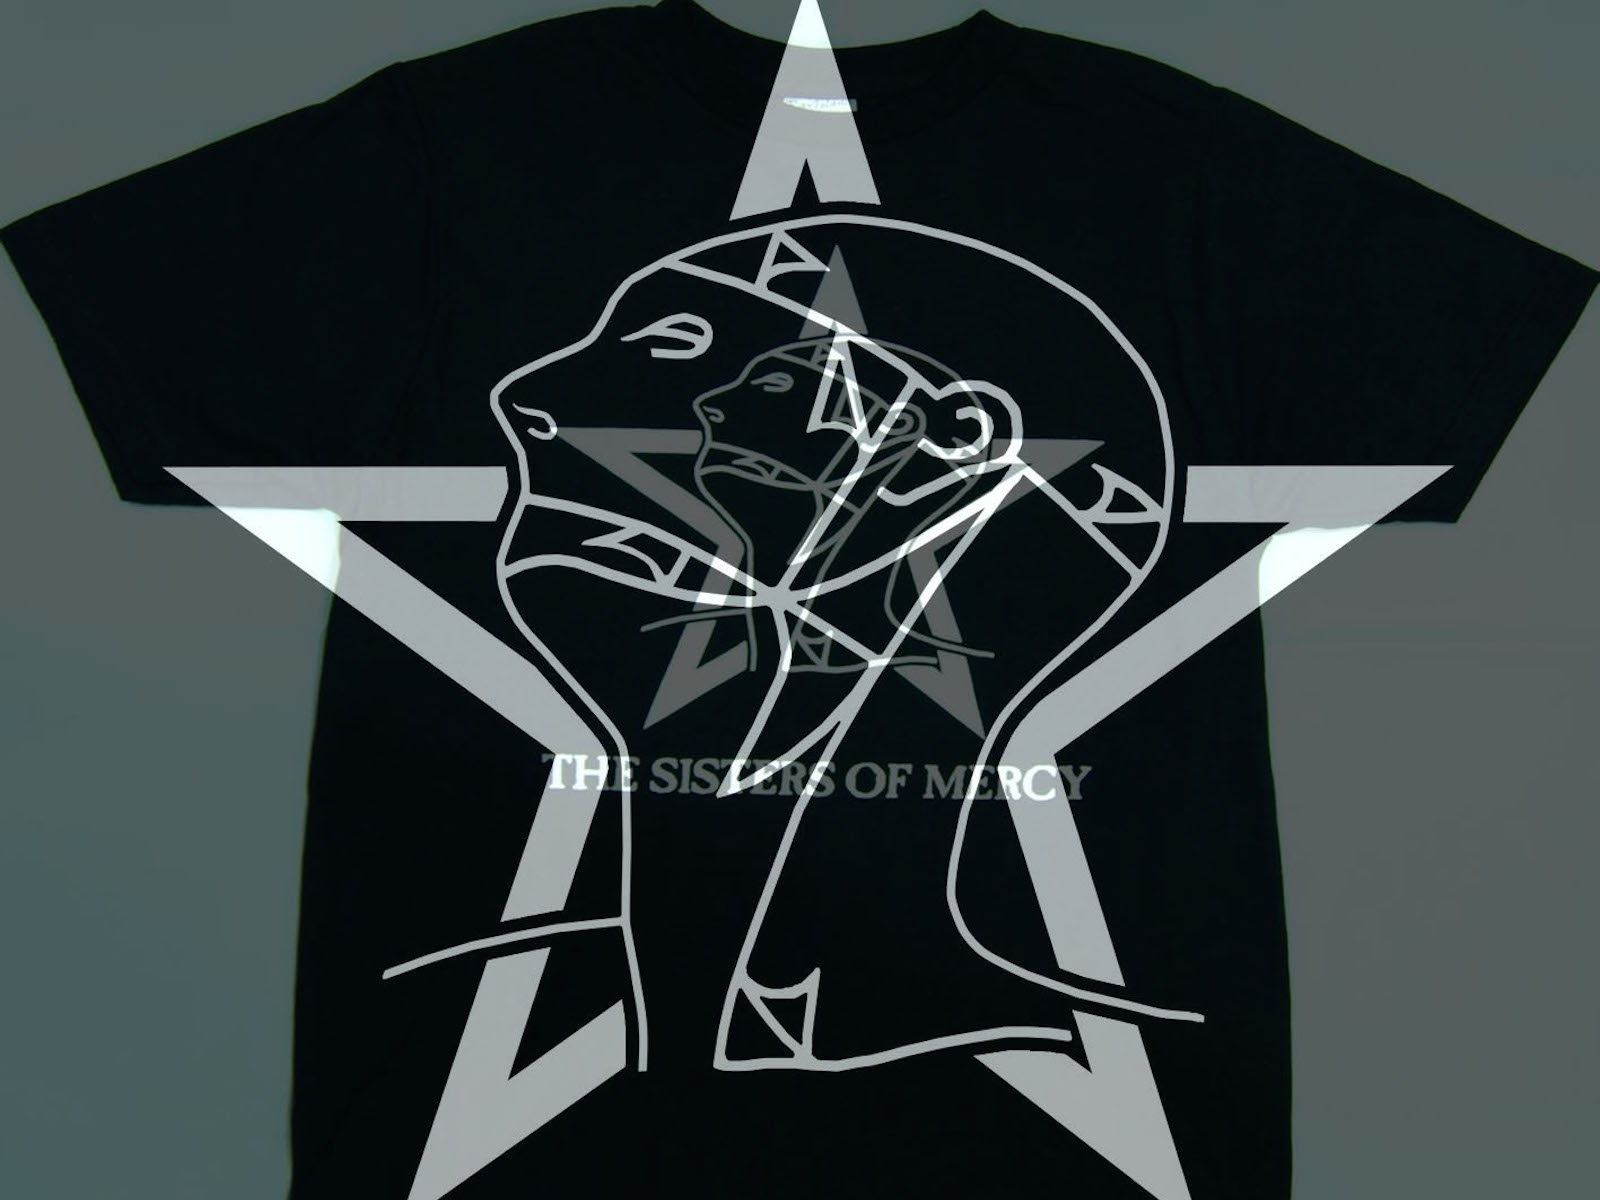 THE SISTERS OF MERCY T-SHIRT